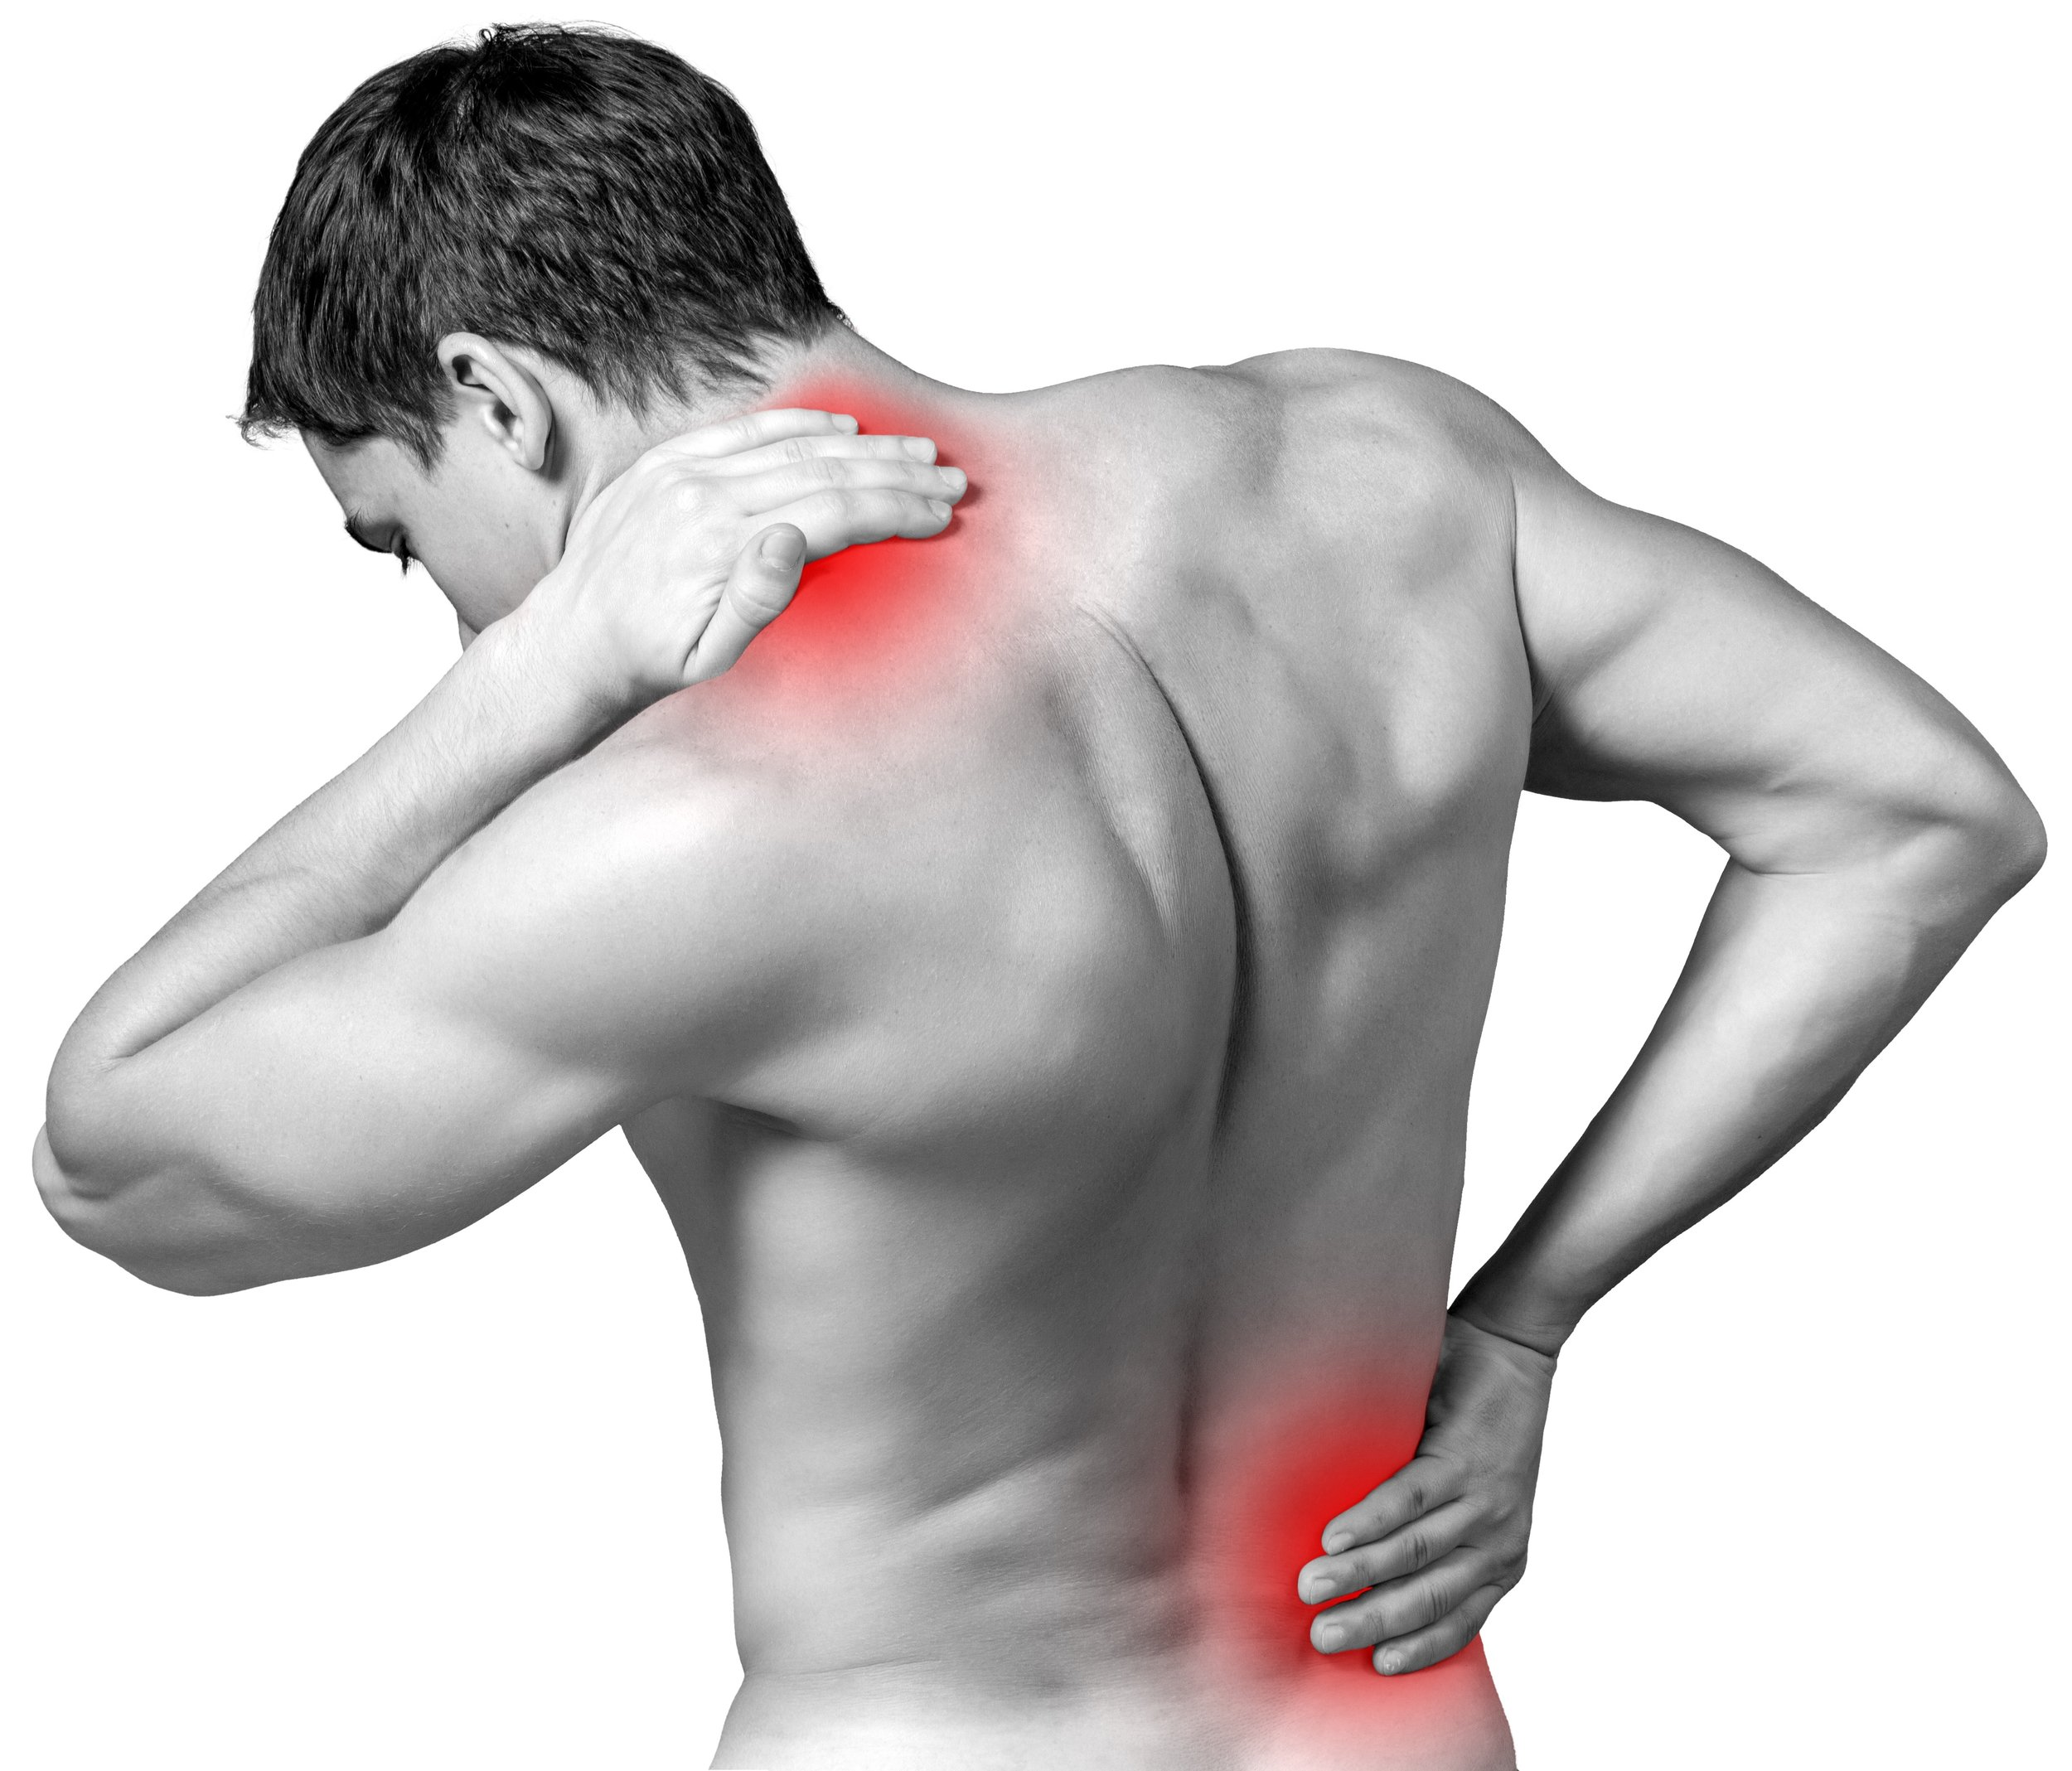 EMG biofeedback can quantify and reduce muscle tension